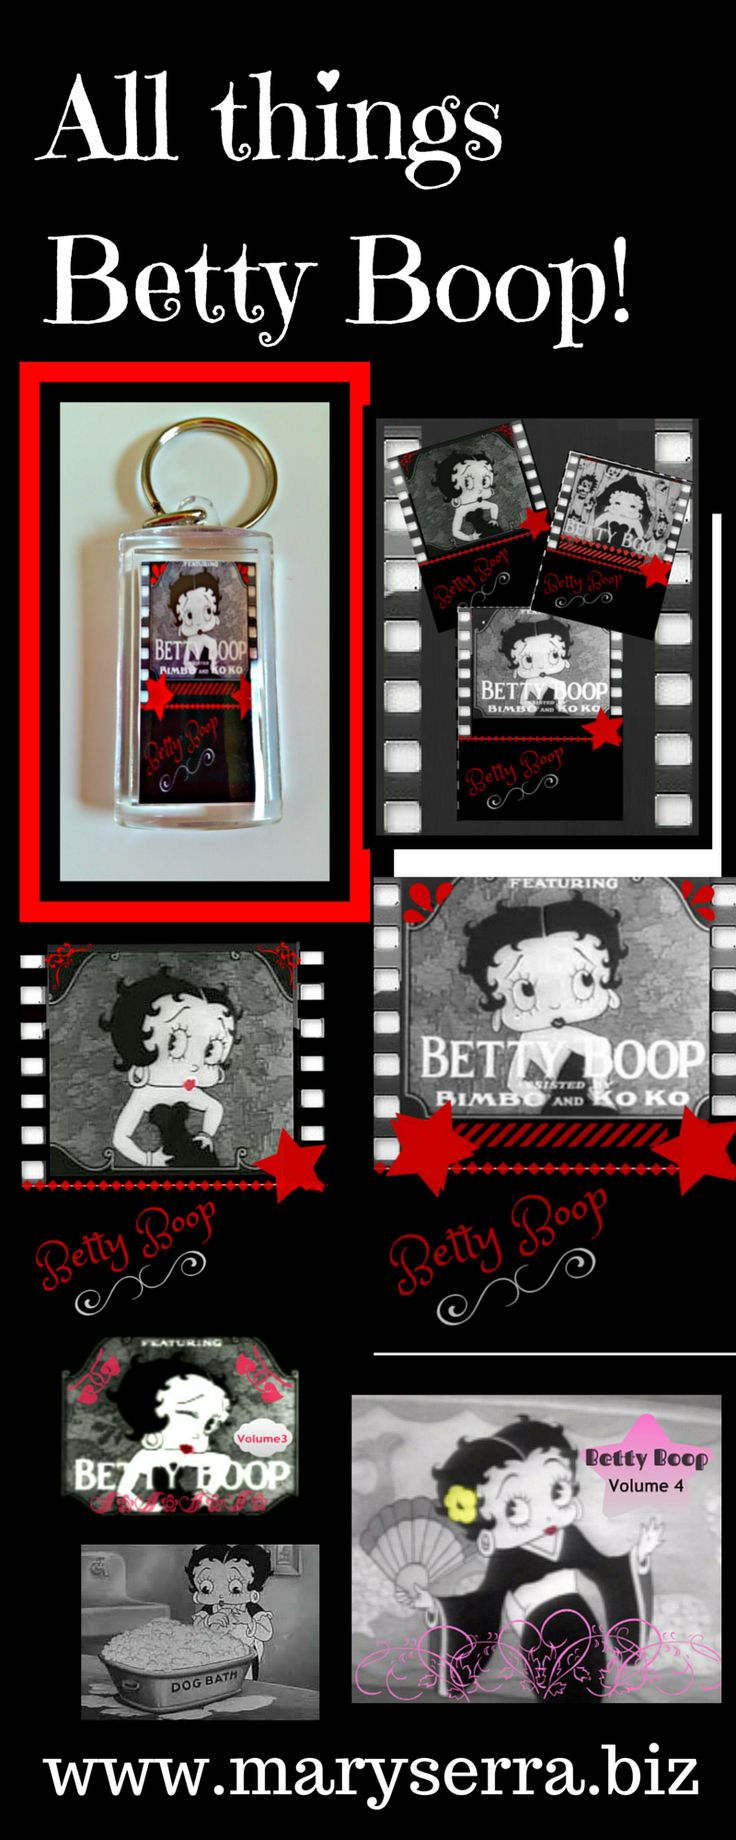 BETTY BOOP CARTOON. This is my original designs please stop by to check them out!  #Betty Boop #Betty Boop Cartoons #Betty Boop DVD